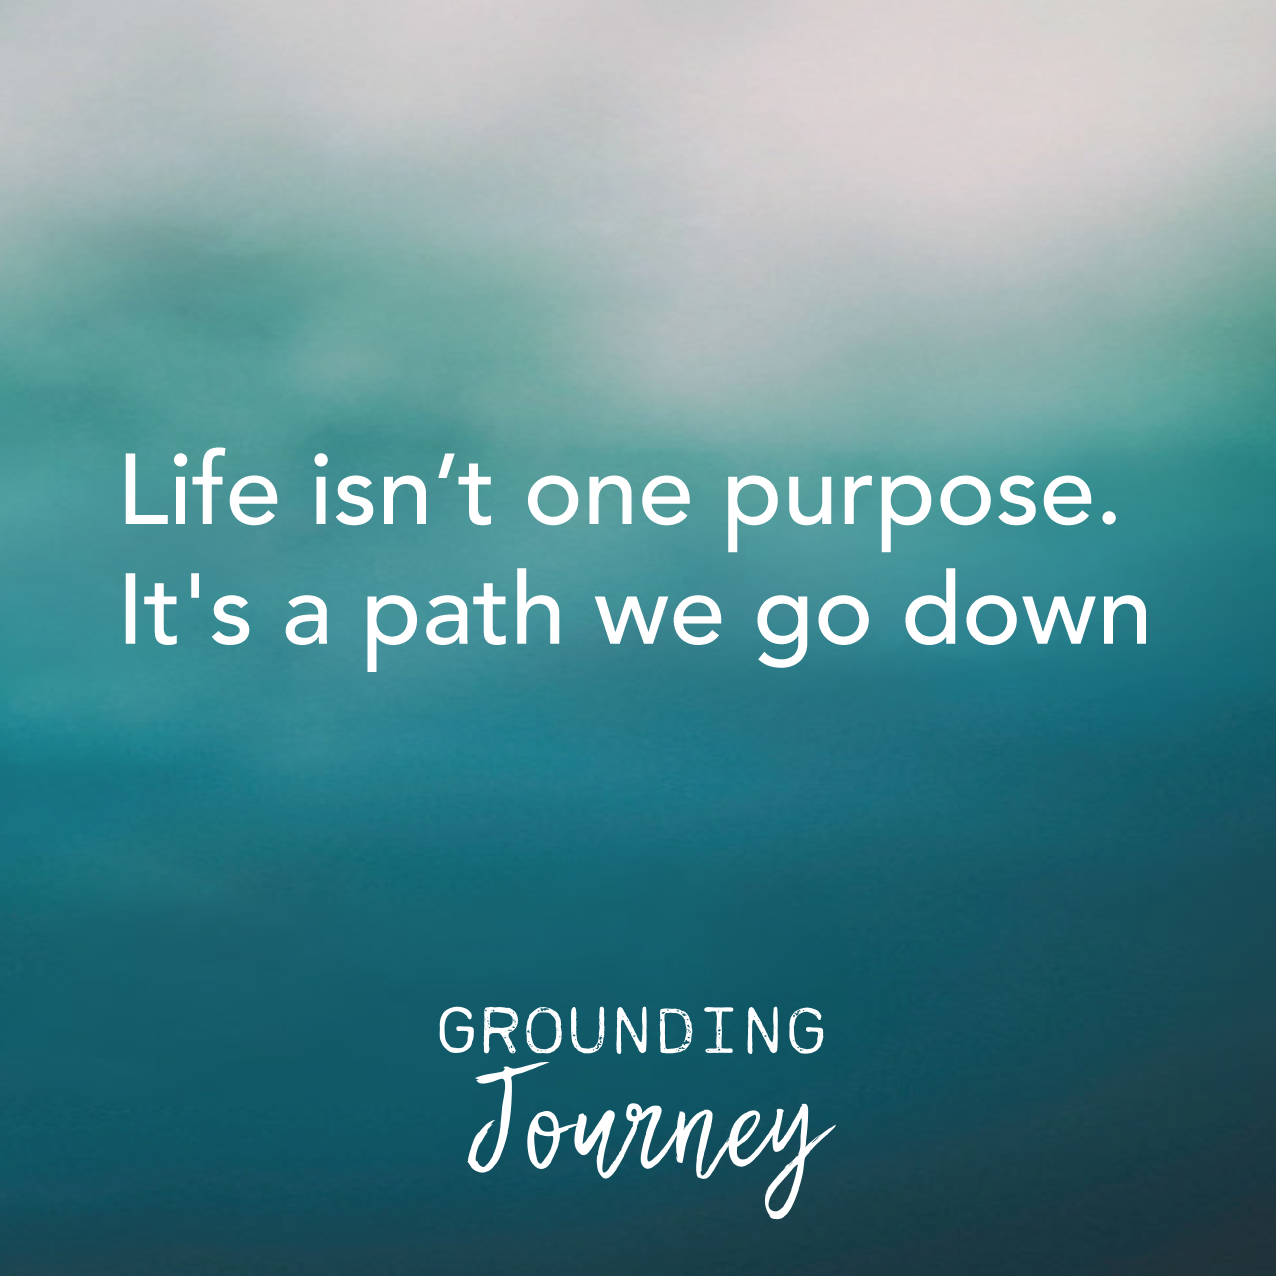 Life isn't one purpose it's a path we go down